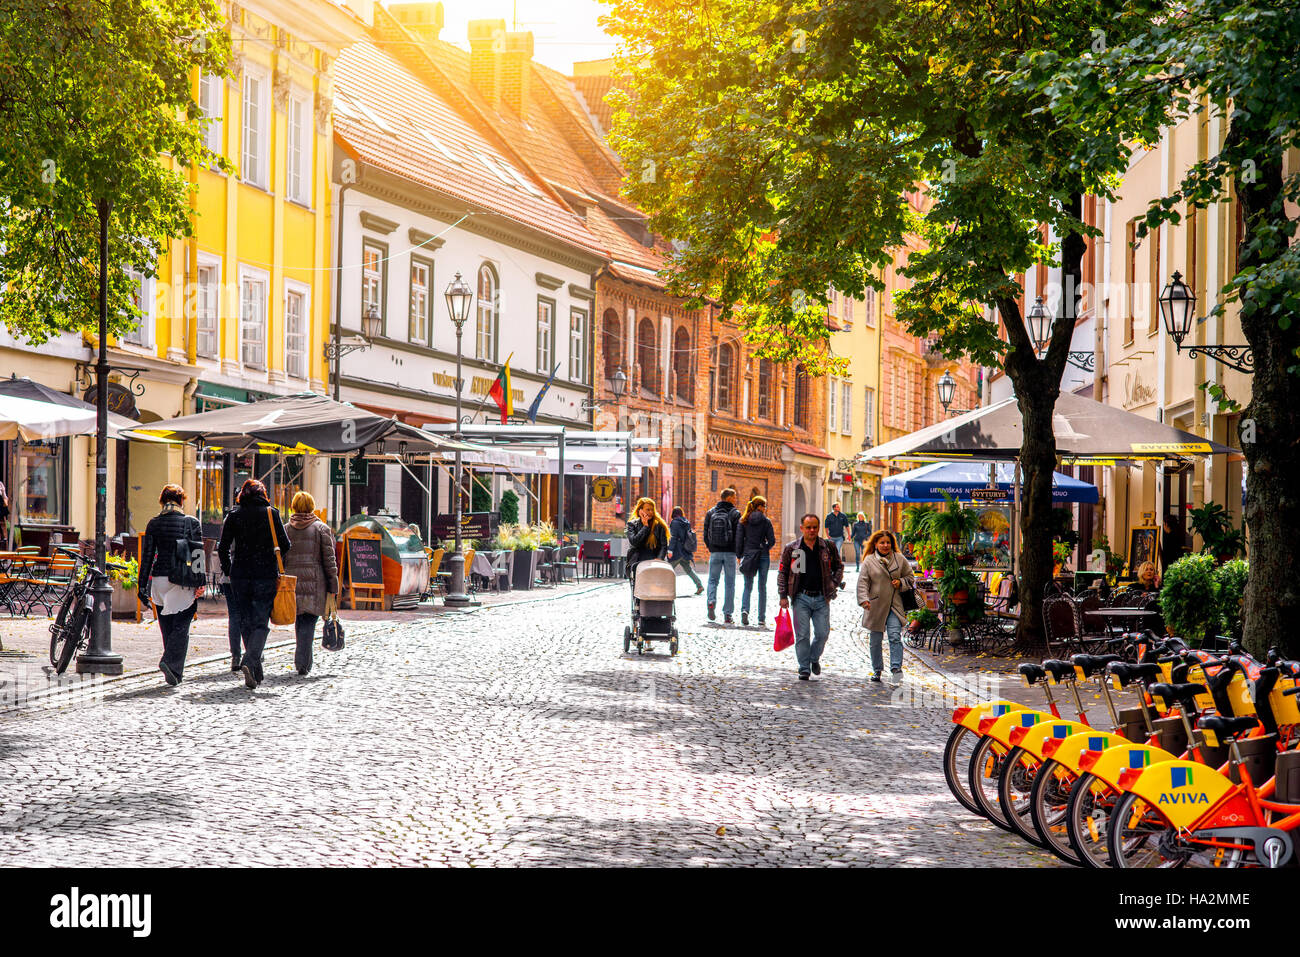 Street view in Vilnius - Stock Image